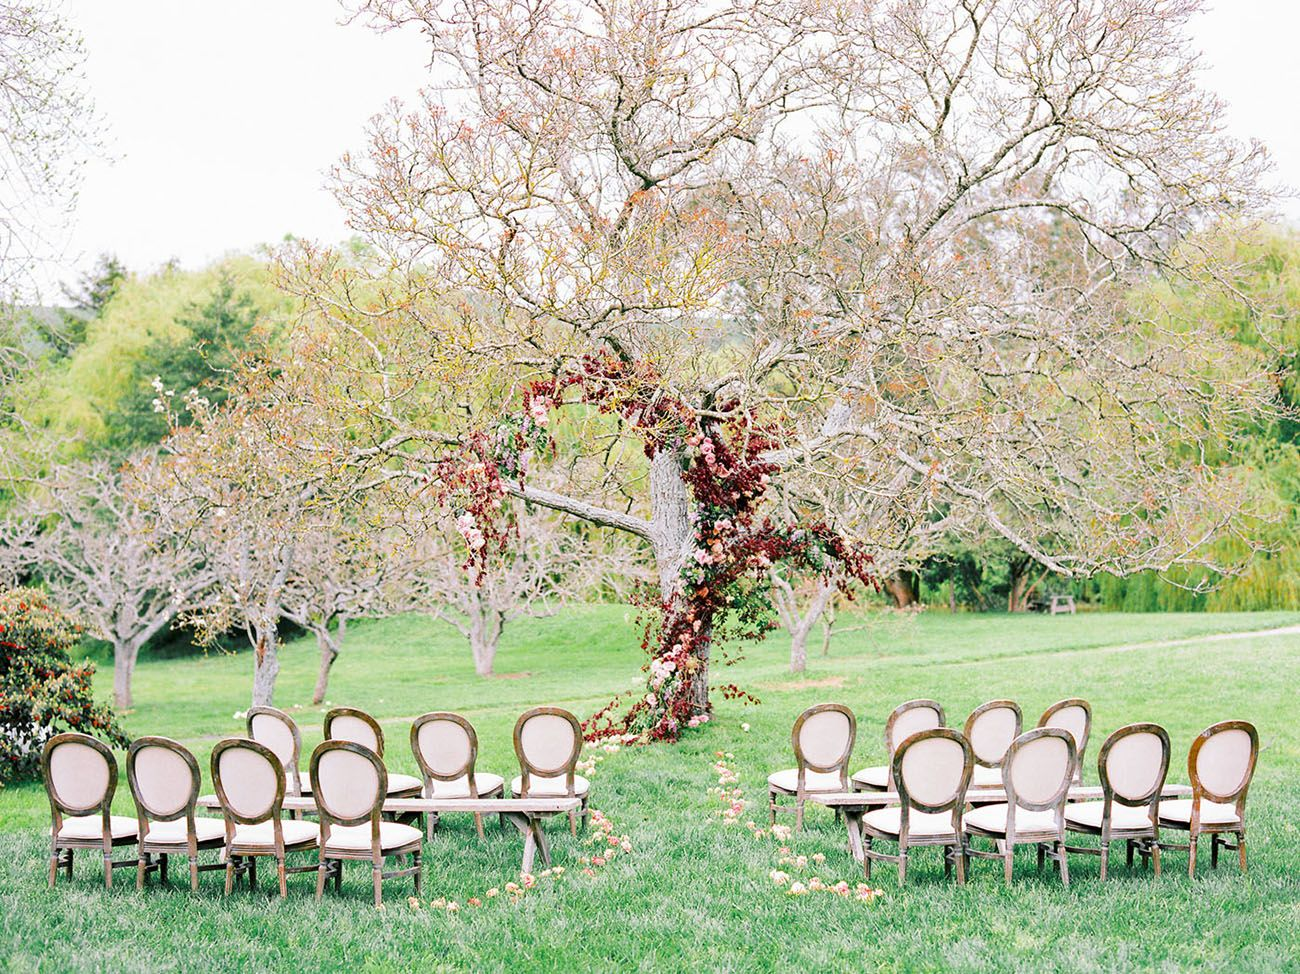 Garden party inspiration  Snakeskin Details give Edgy Romance to this Rustic Wedding